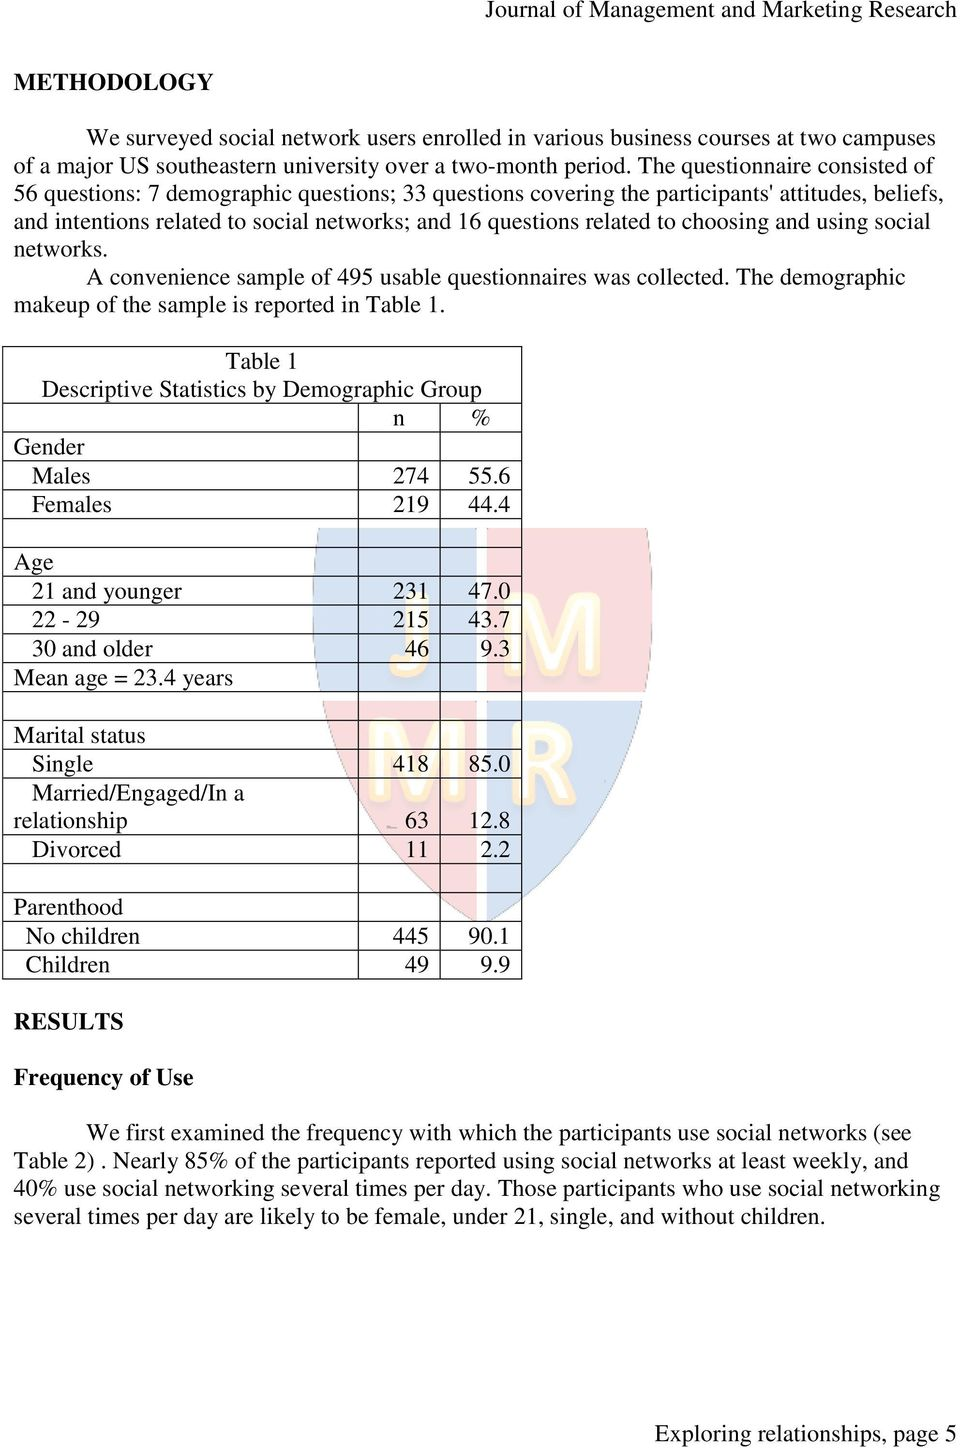 to choosing and using social networks. A convenience sample of 495 usable questionnaires was collected. The demographic makeup of the sample is reported in Table 1.